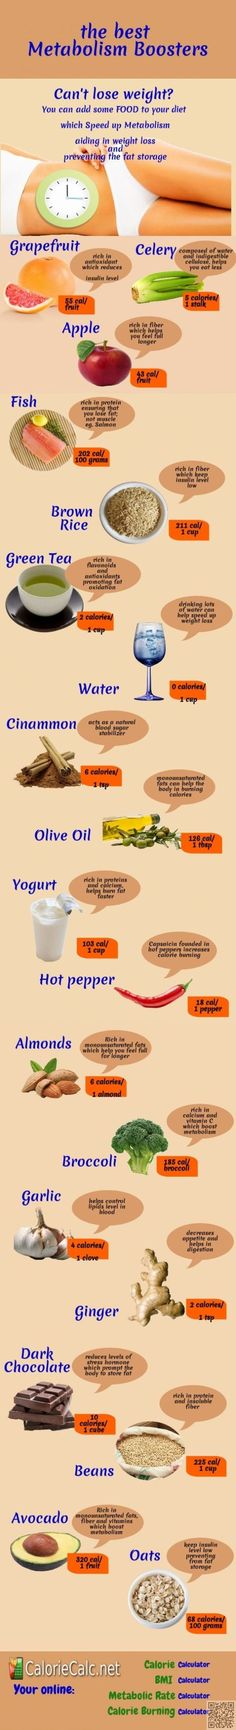 See more here ► https://www.youtube.com/watch?v=0KRTOVZ92_4 Tags: spirulina weight loss, healthy dinner recipes to lose weight, fastest way to lose weight - Speed Your Metabolism - If you're interested in foods which speed your metabolism then have a #look at this infographic and stock up when you're next out shopping!   - If you like this pin, repin it and follow our boards :-)  #FastSimpleFitness - www.facebook.com/FastSimpleFitness #exercise #diet #workout #fitness #health